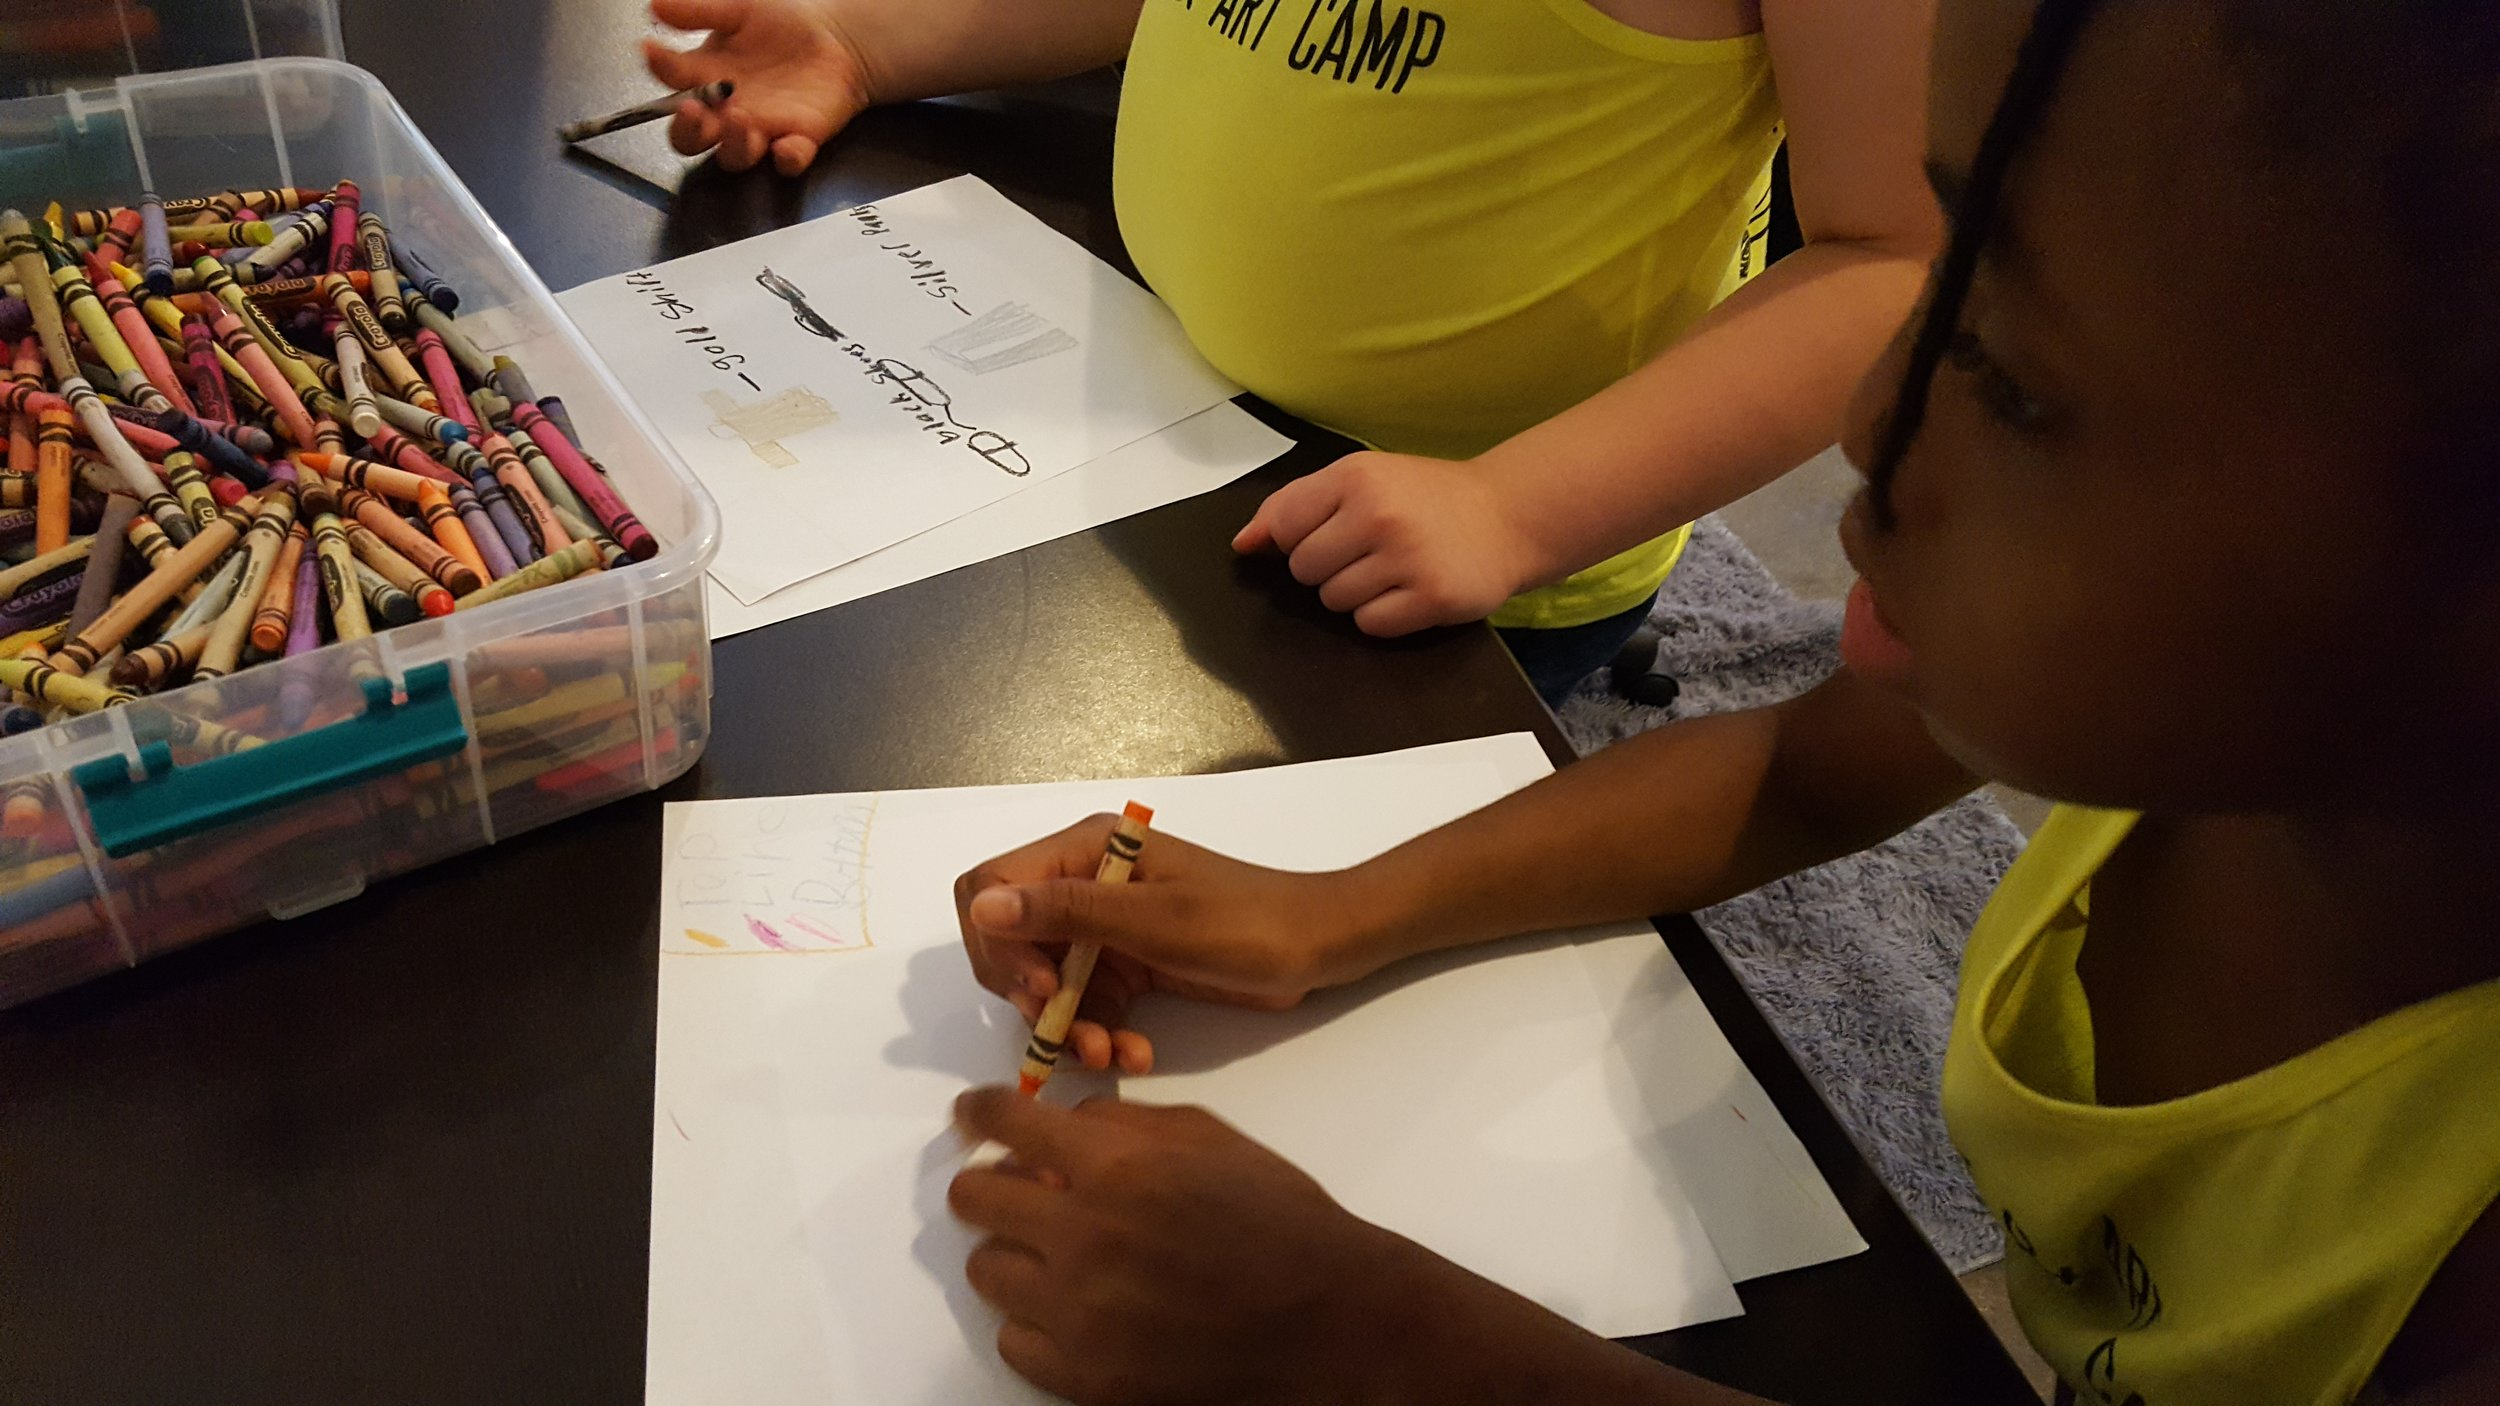 Students during a drawing activity